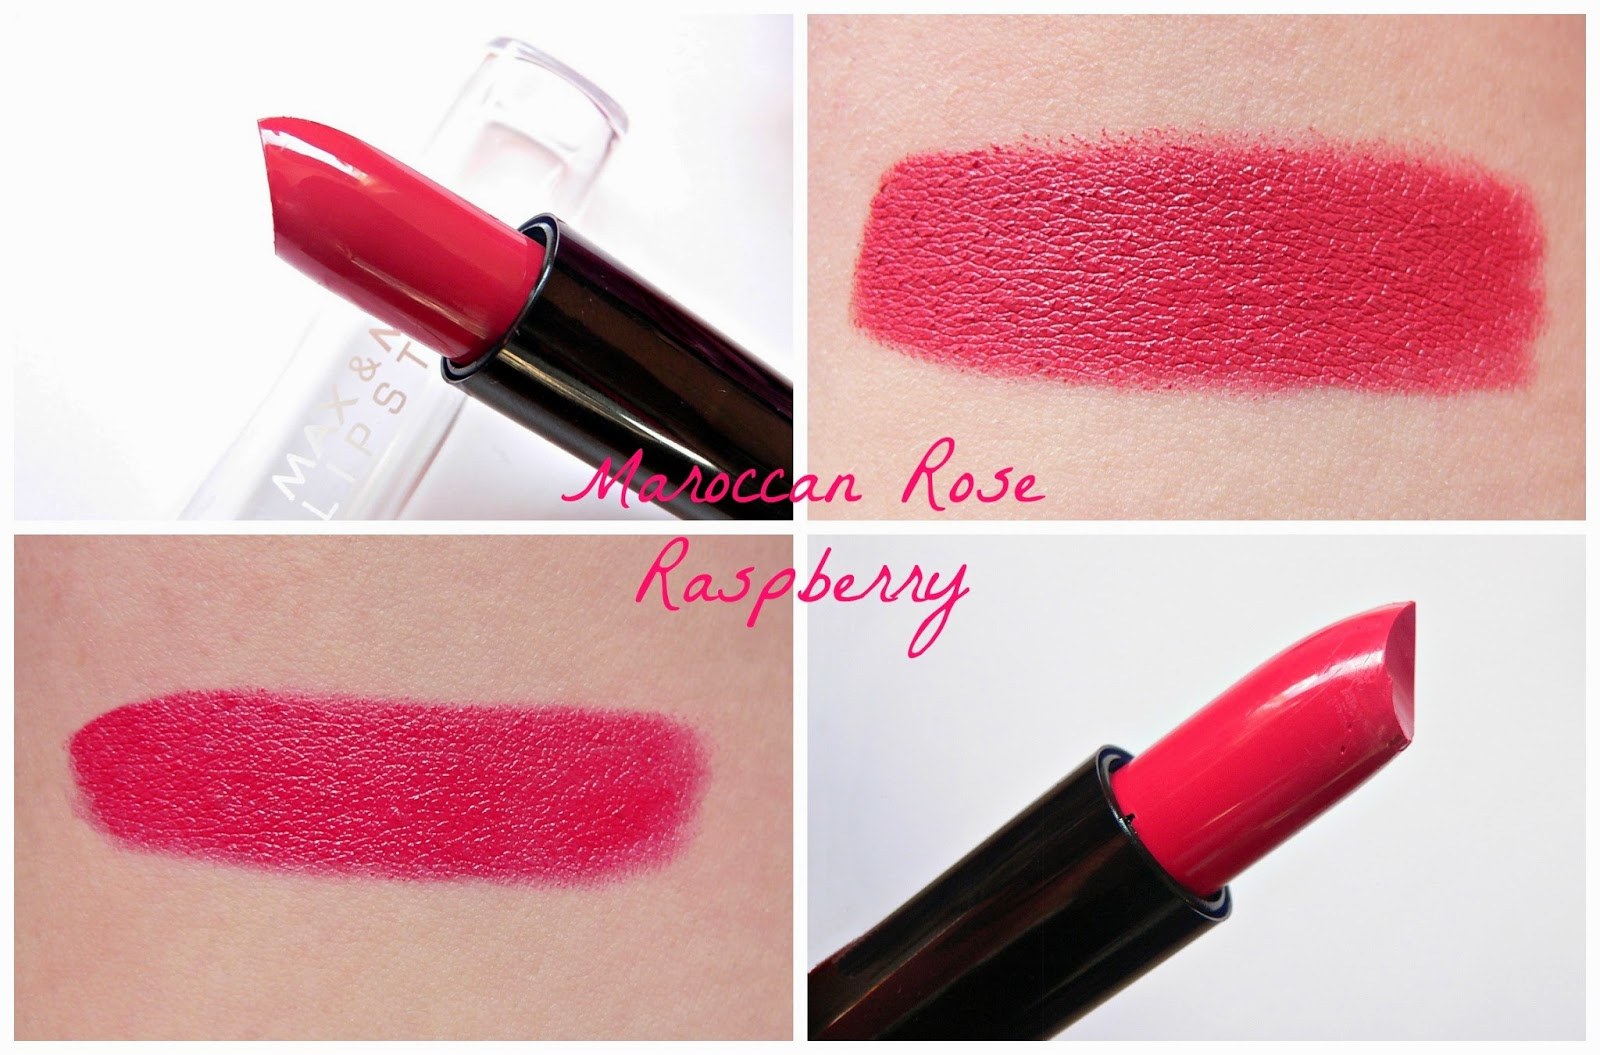 lipstick-addict.nl, review, swatches, lipstick, lipsticks, action, max&more, budget, roze, shoplog, maroccan rose, raspberry